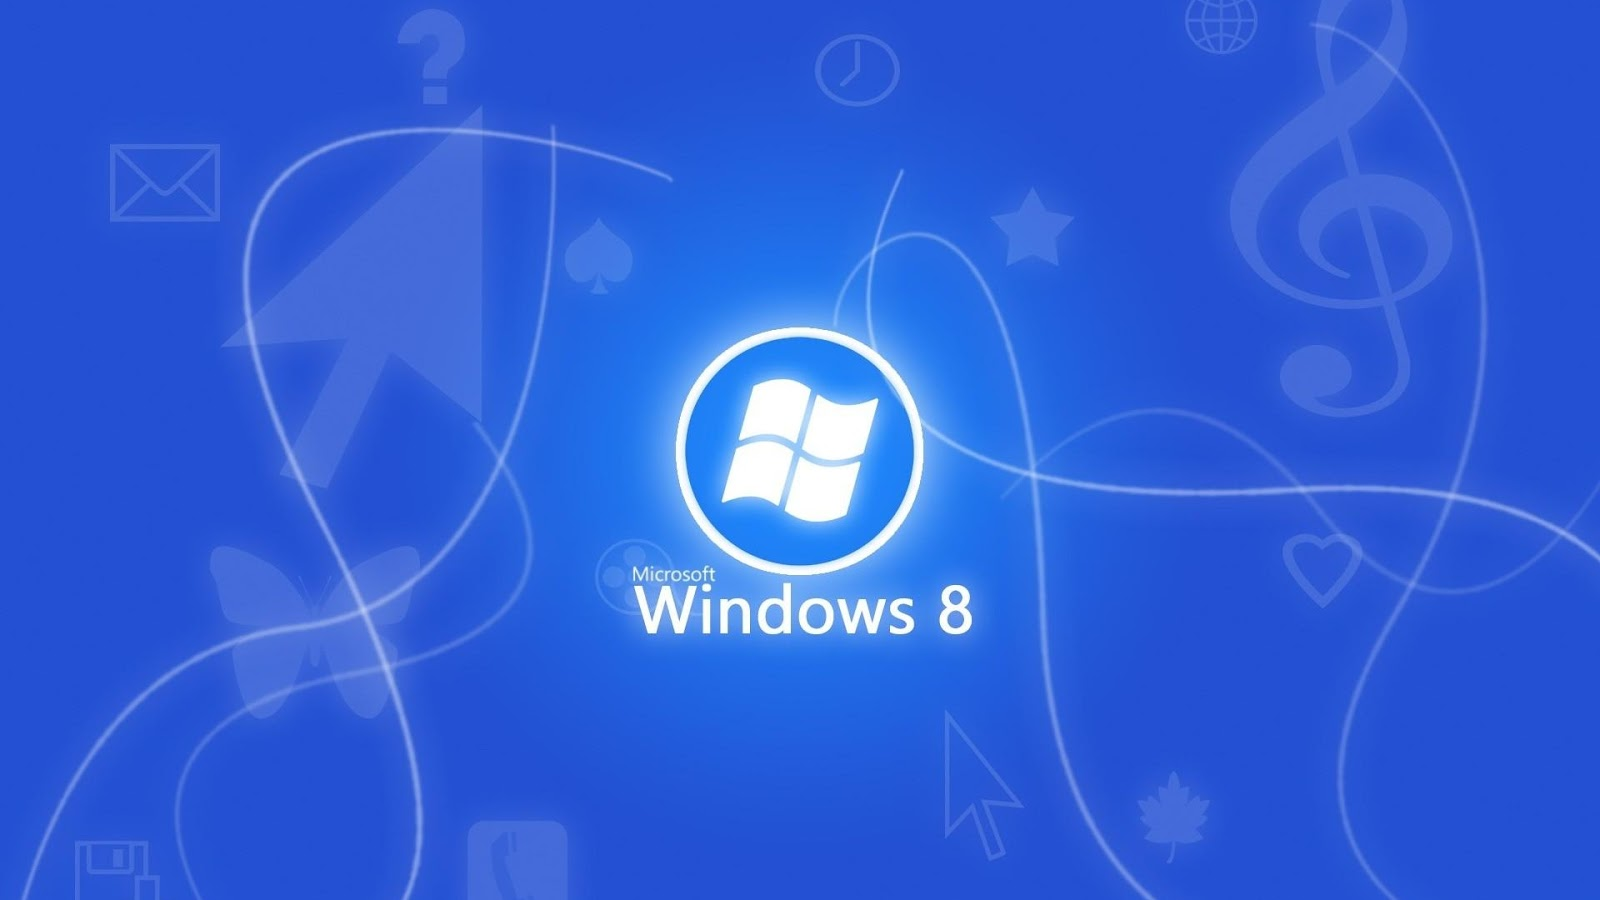 Microsoft mcsa windows 8 it certification exam mcsa win 8 training if youd like all matters to obtain improved managed up to suit your needs during the mcsa windows 8 audio instruction on line during the most effective 1betcityfo Choice Image